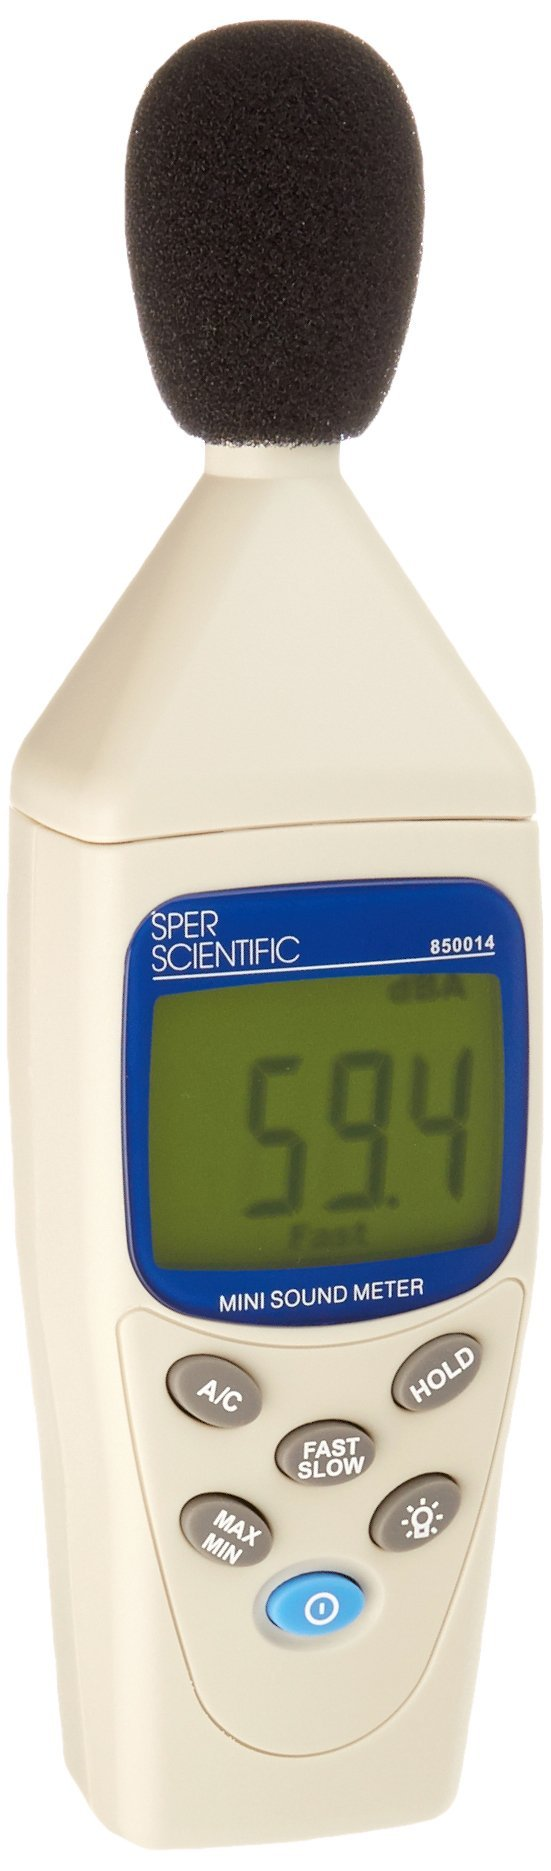 Sper Scientific 850014 Sound Meter by Sper Scientific